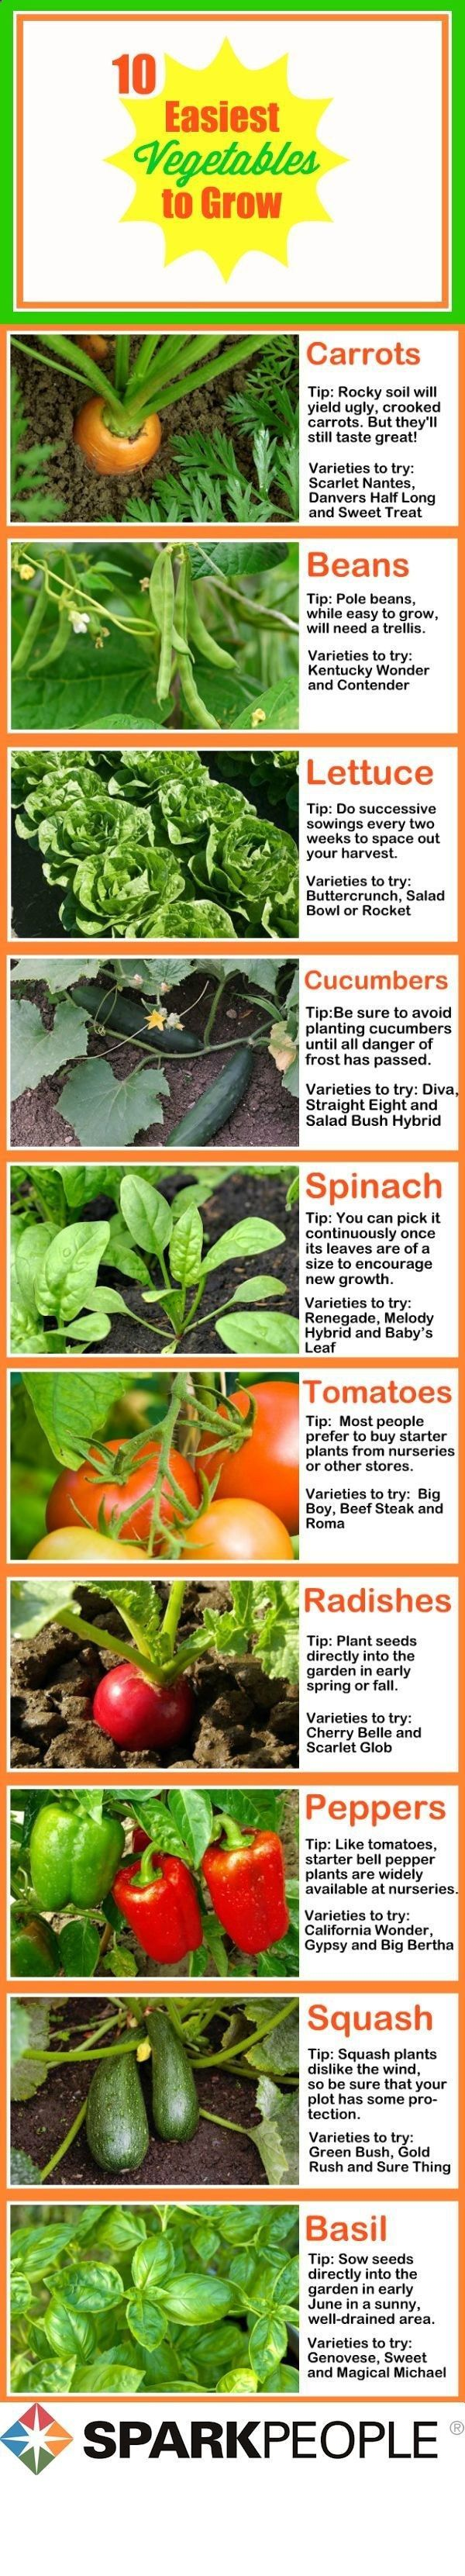 Easy Vegetable Garden Ideas Part - 48: The 10 Easiest Vegetables To Grow: You Donu0027t Have To Have A Green Thumb To  Grow These Easy Plants!